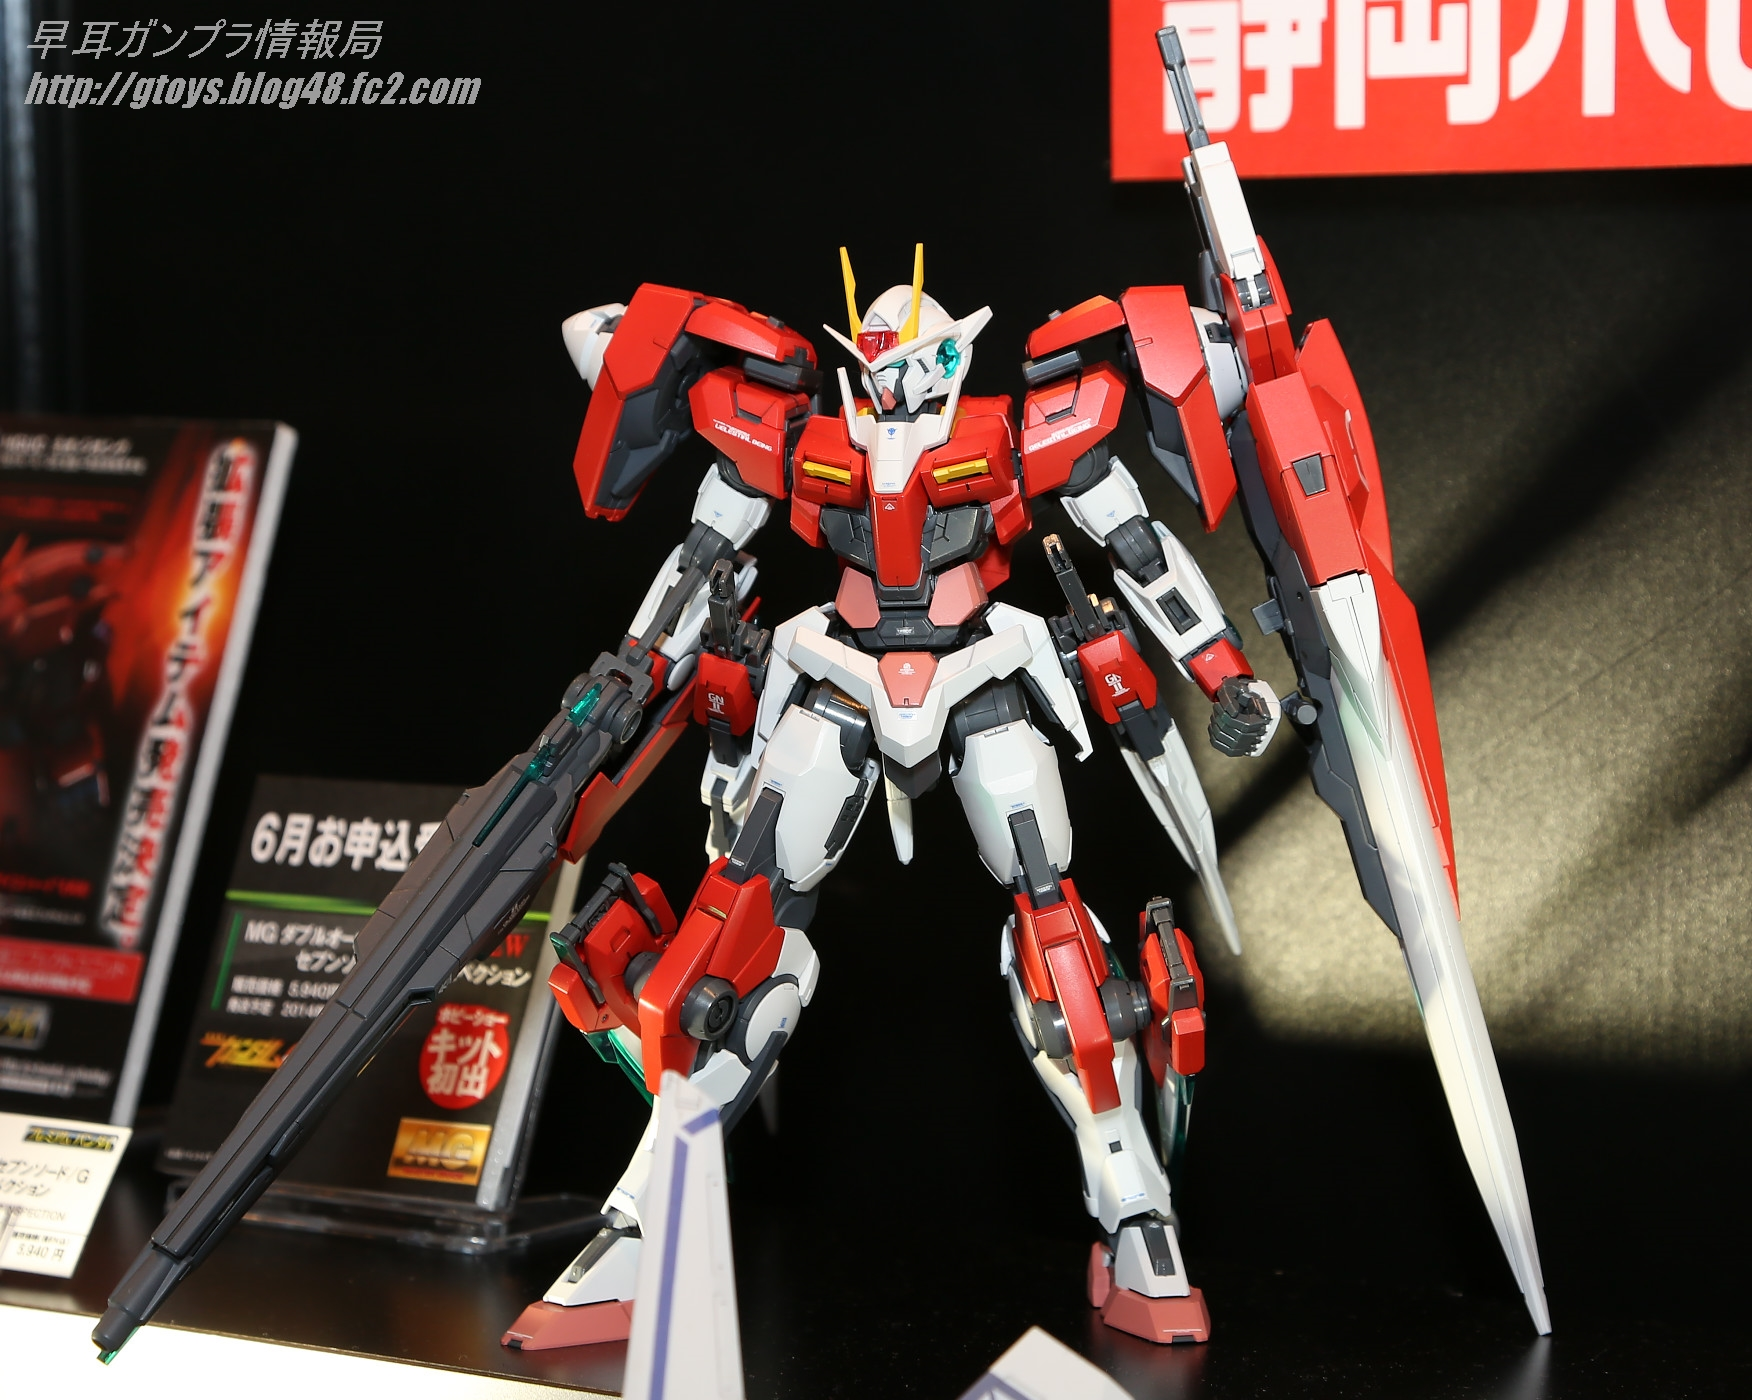 P Bandai Mg 1 100 Double Gundam Seven Sword G Inspection 53 Photoreport By Gtoys